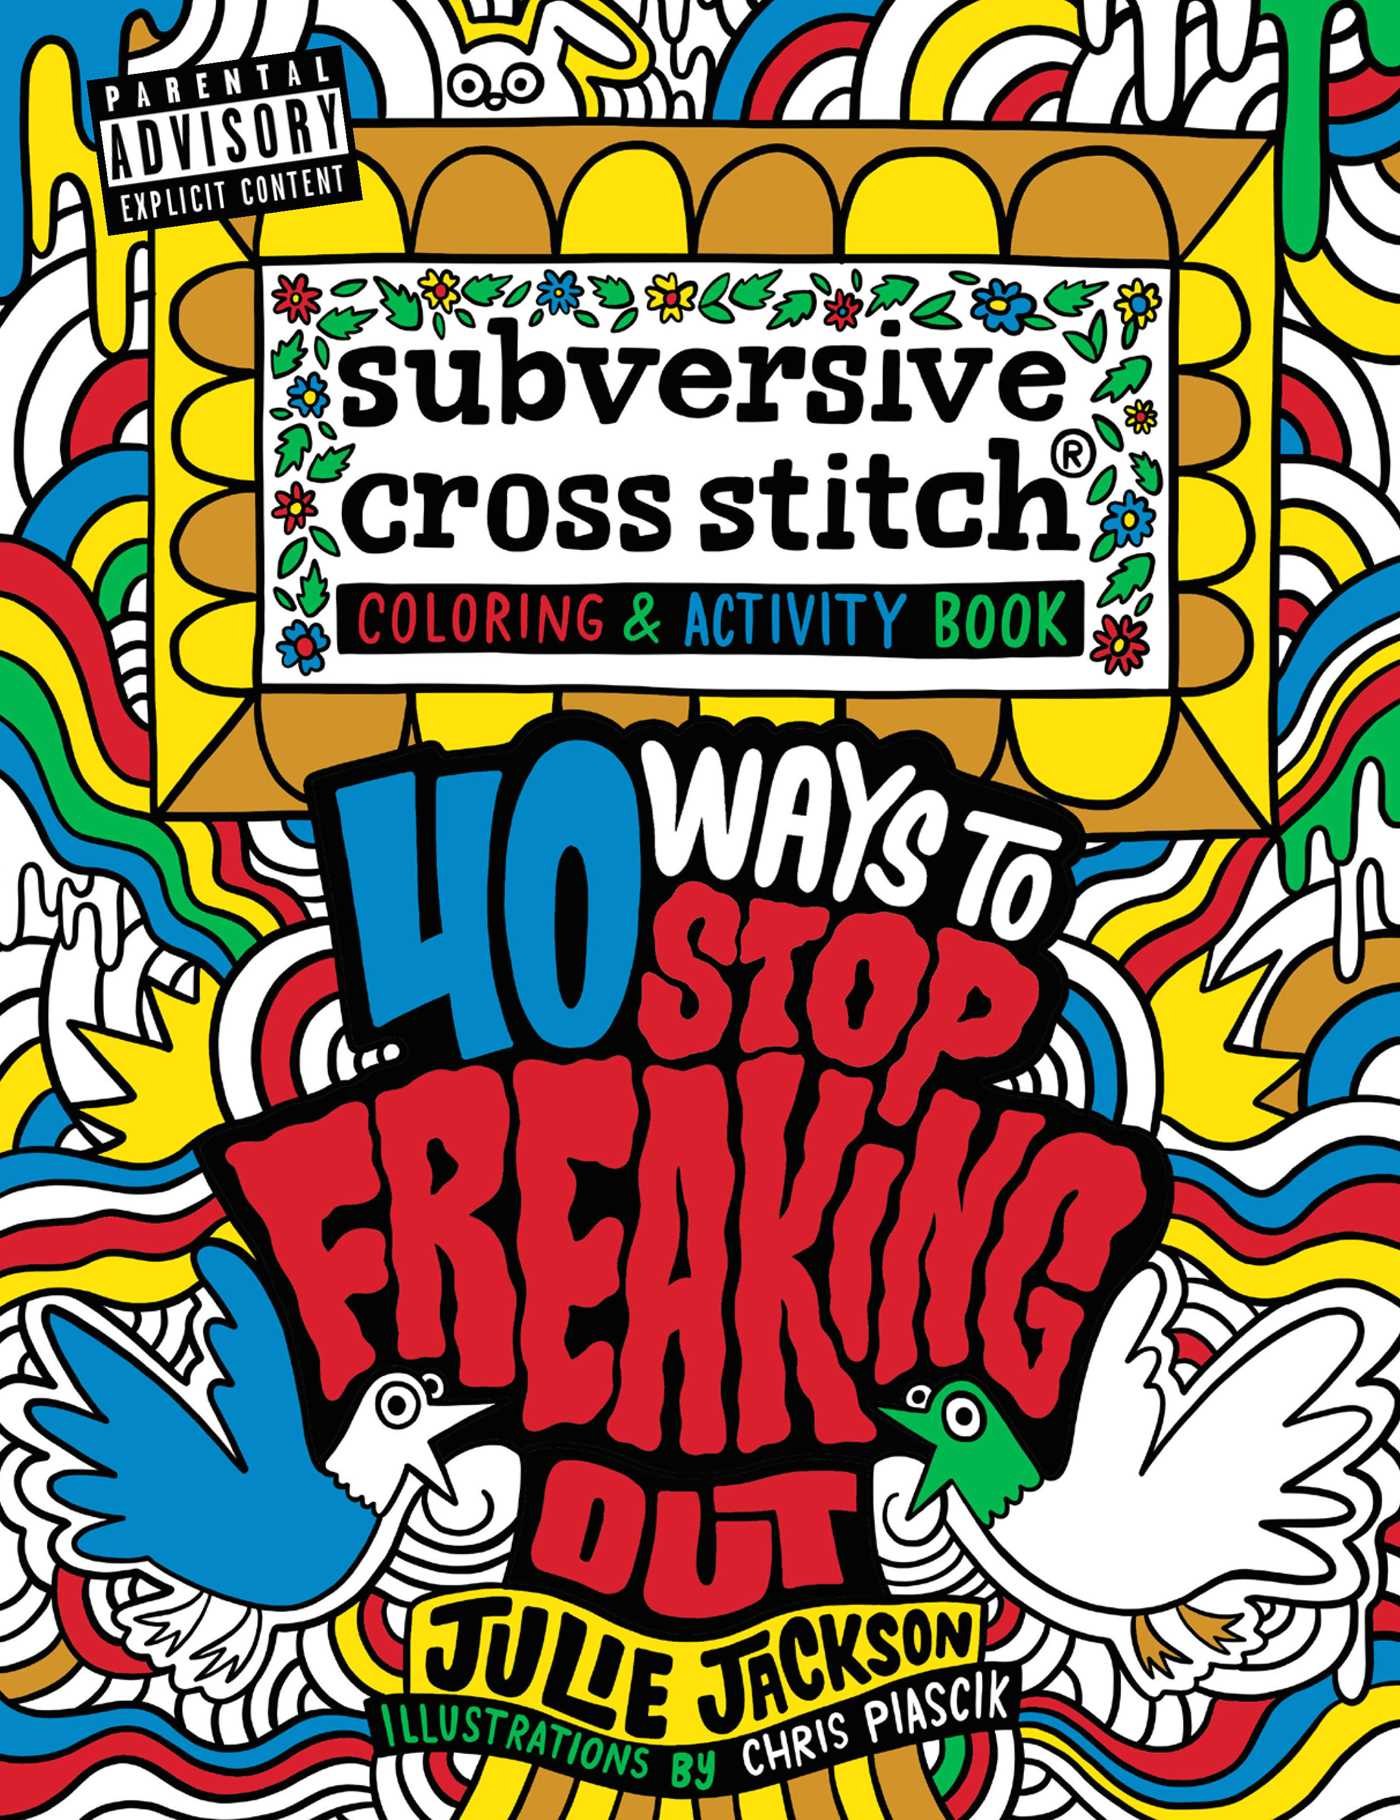 Subversive Cross Stitch Coloring and Activity Book | Book by Julie ...